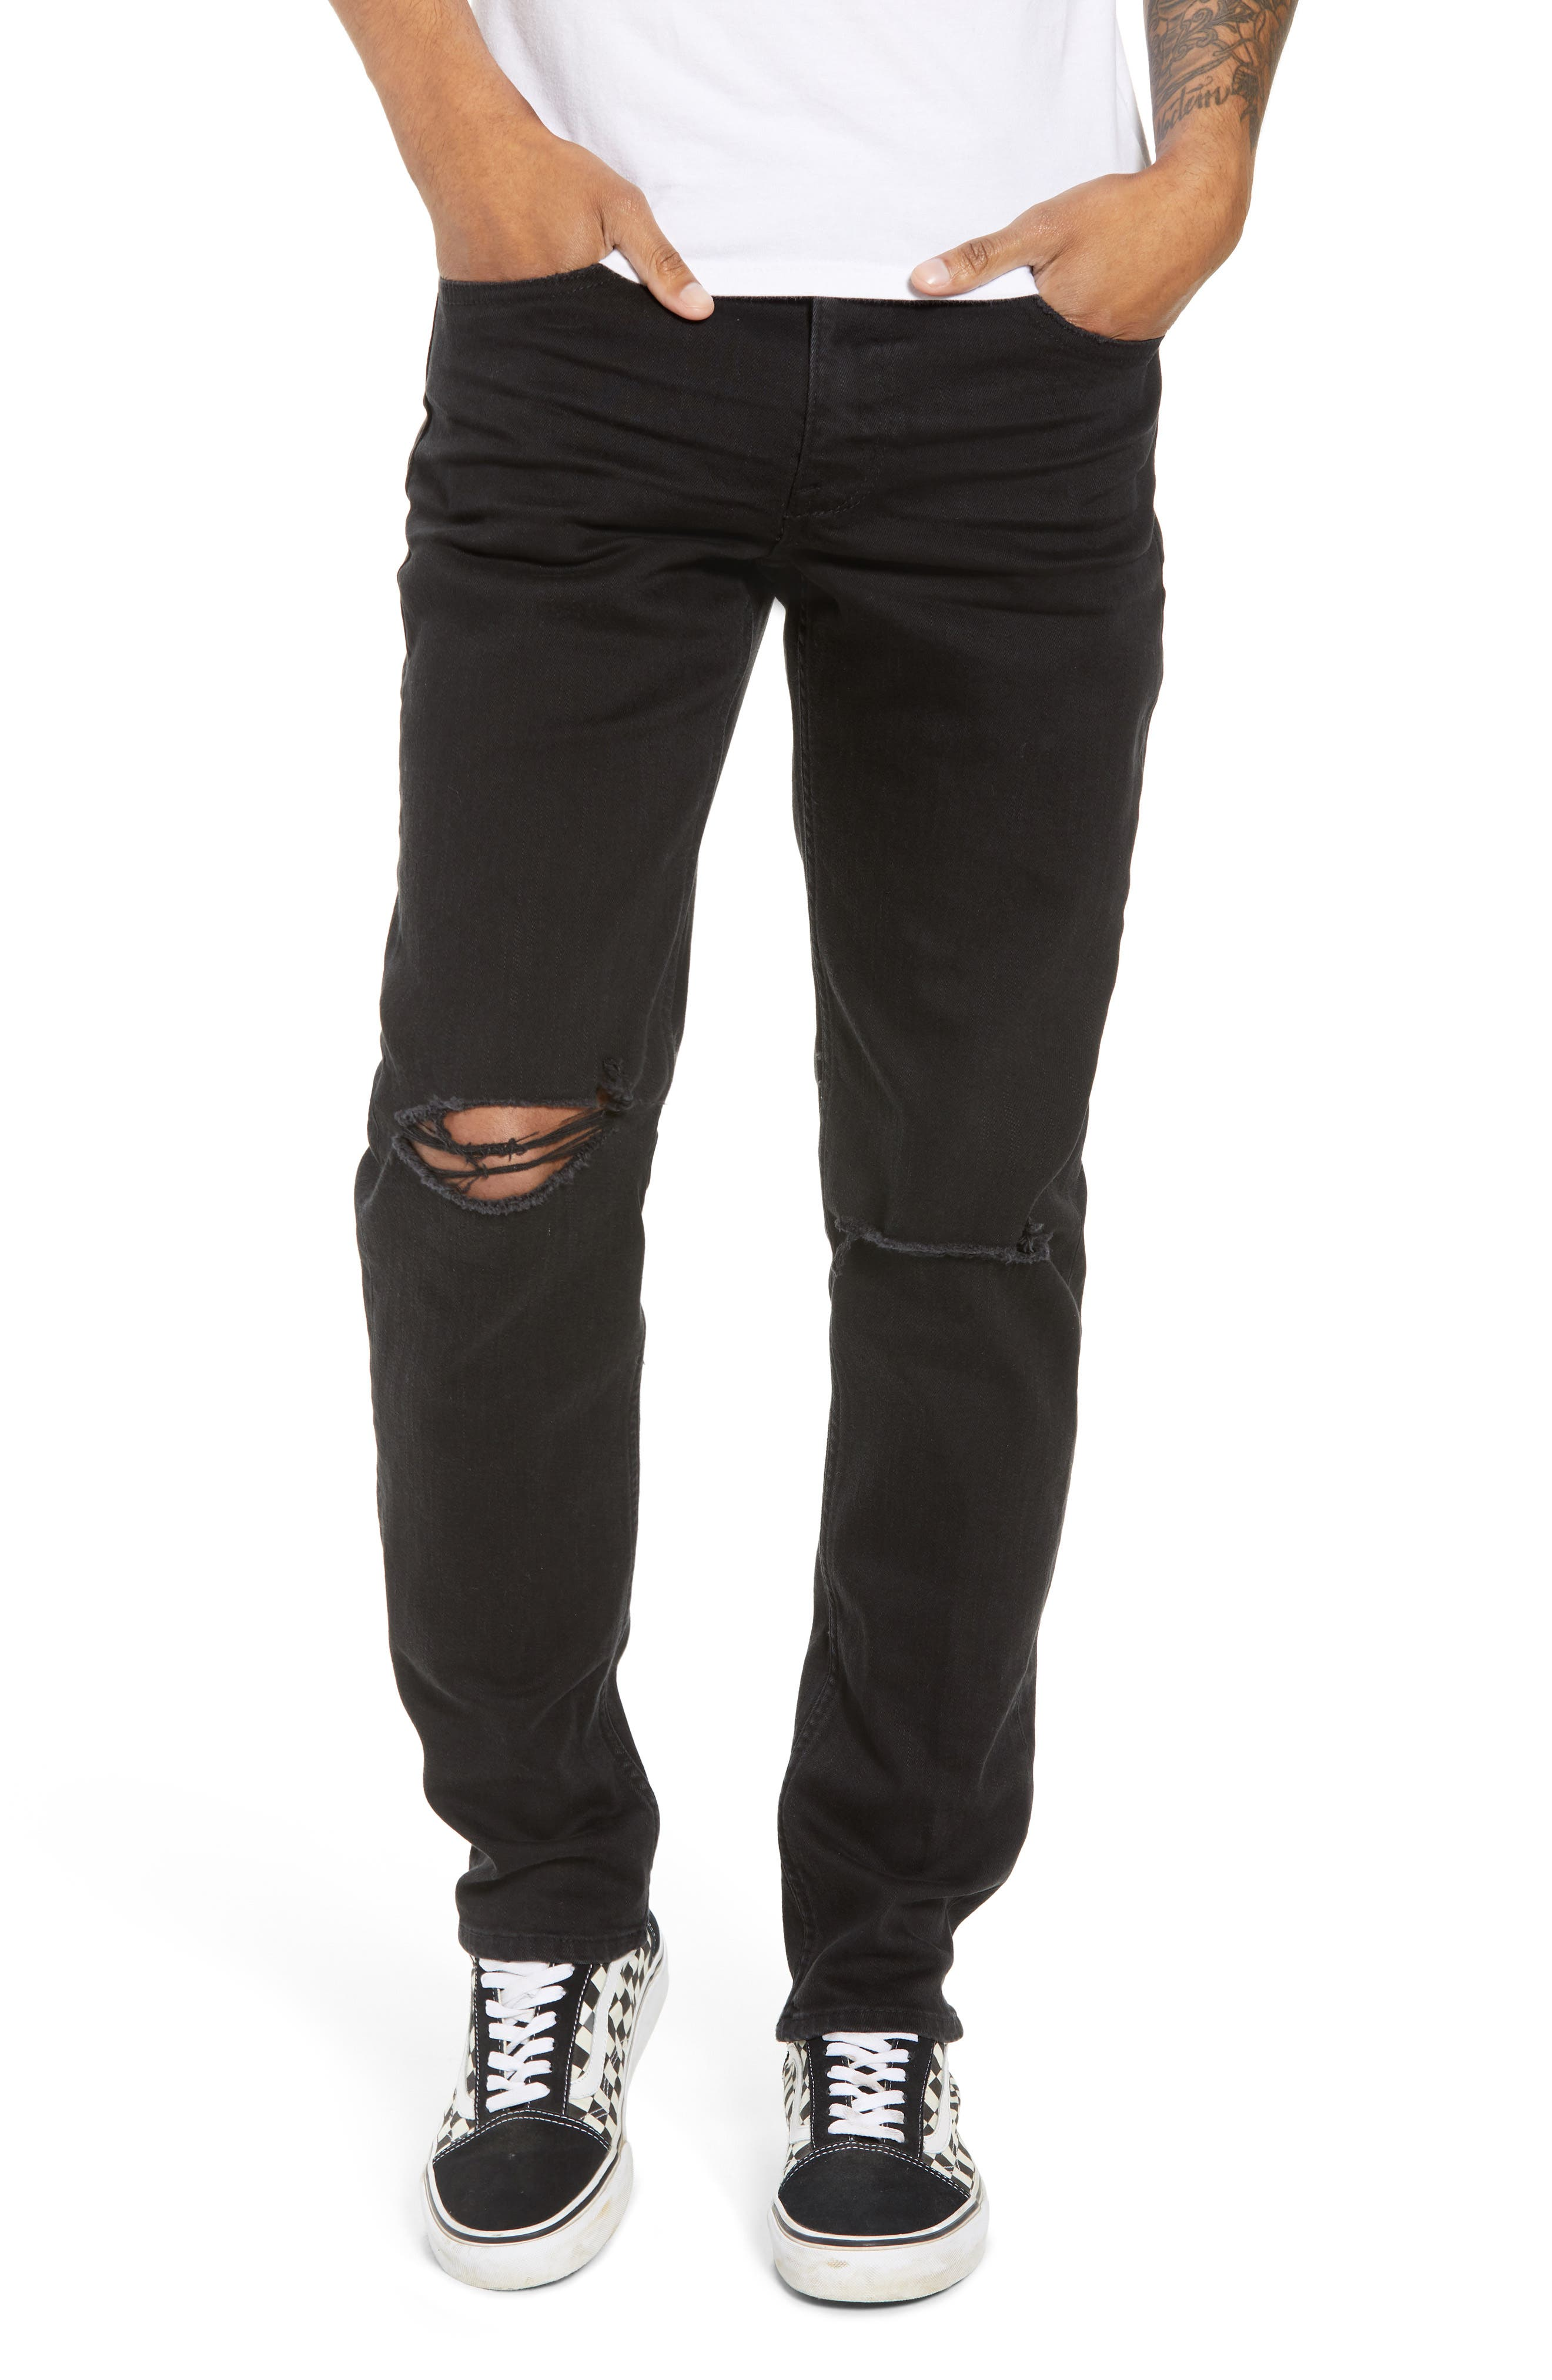 THE RAIL Ripped Skinny Jeans, Main, color, BLACK STONE WASH